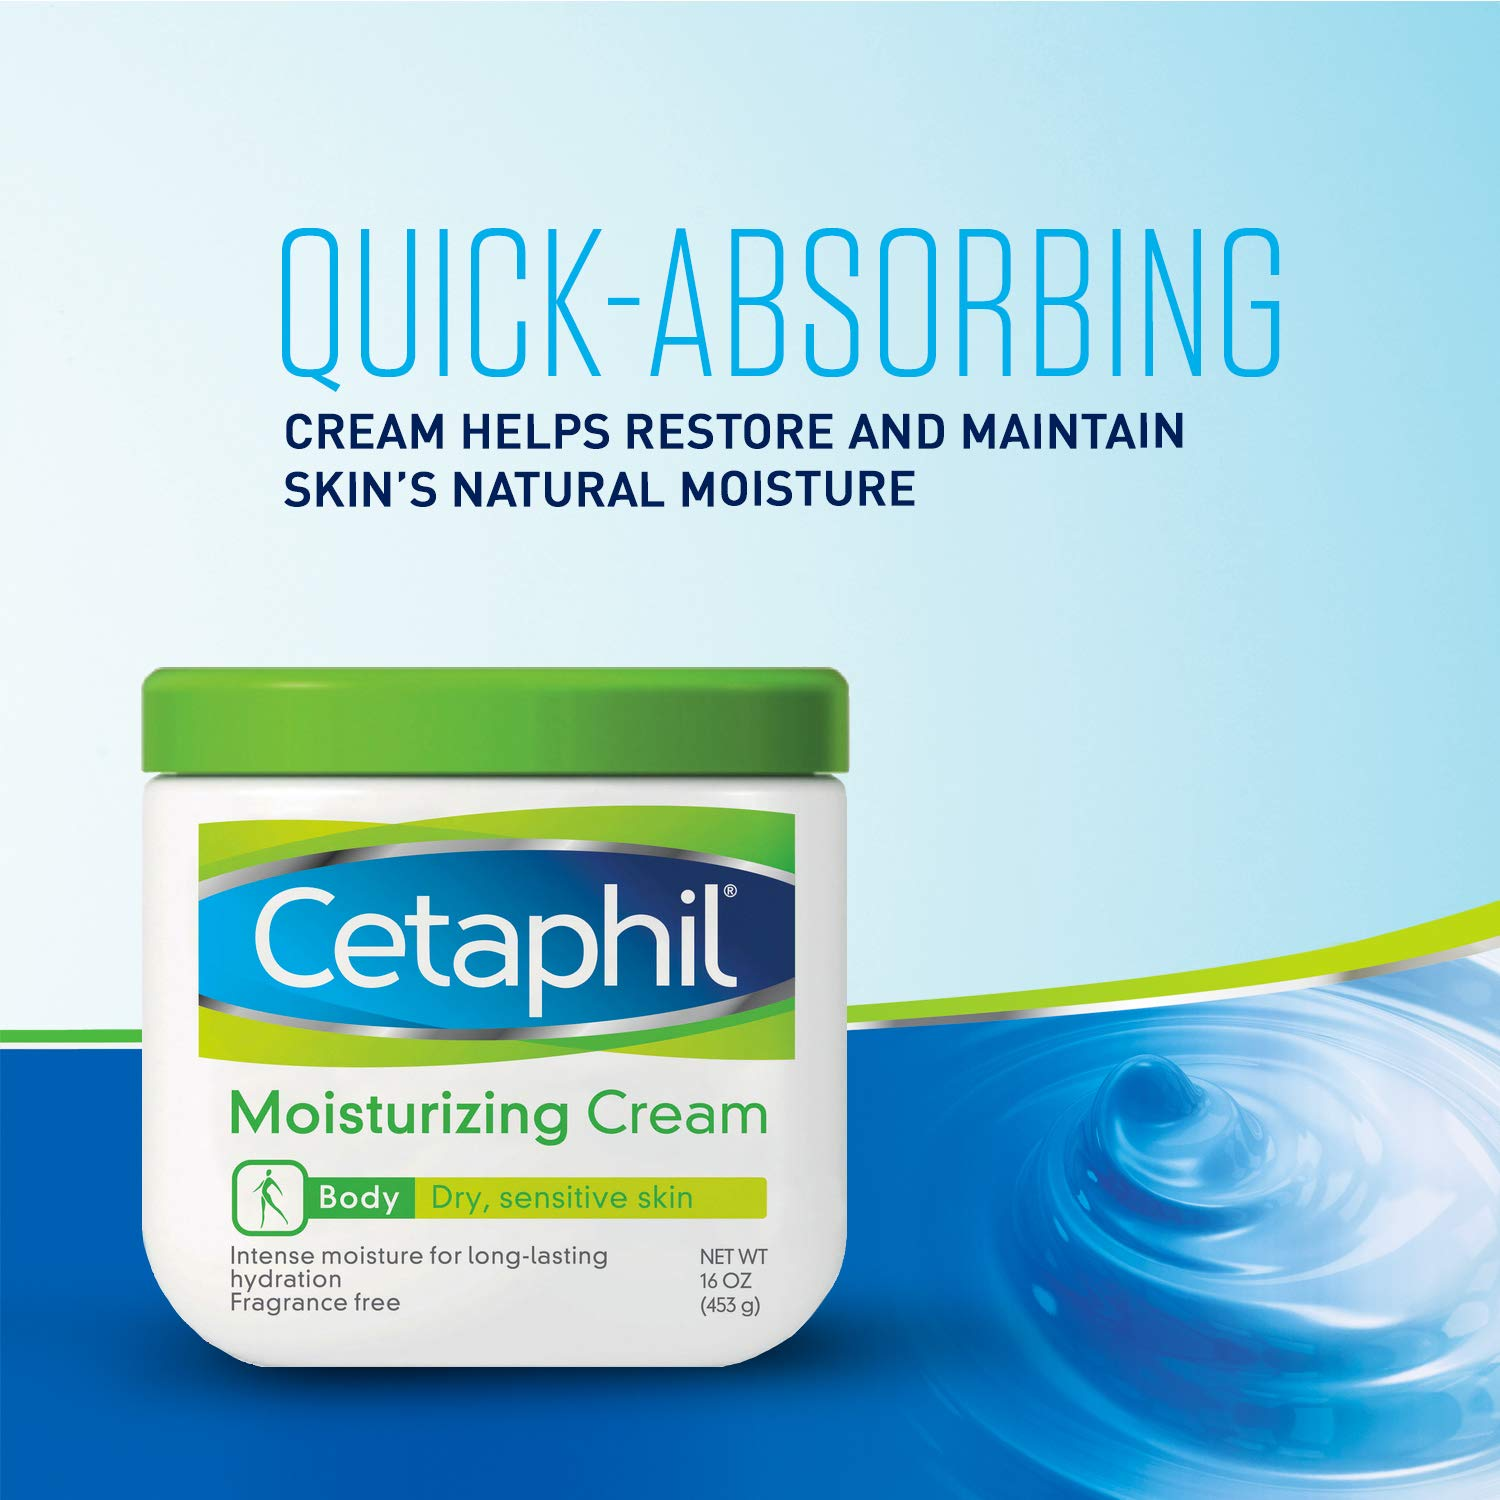 Cetaphil Moisturizing Cream for Very Dry/Sensitive Skin, Fragrance Free, 16 Ounce, Pack of 3 by Cetaphil (Image #3)